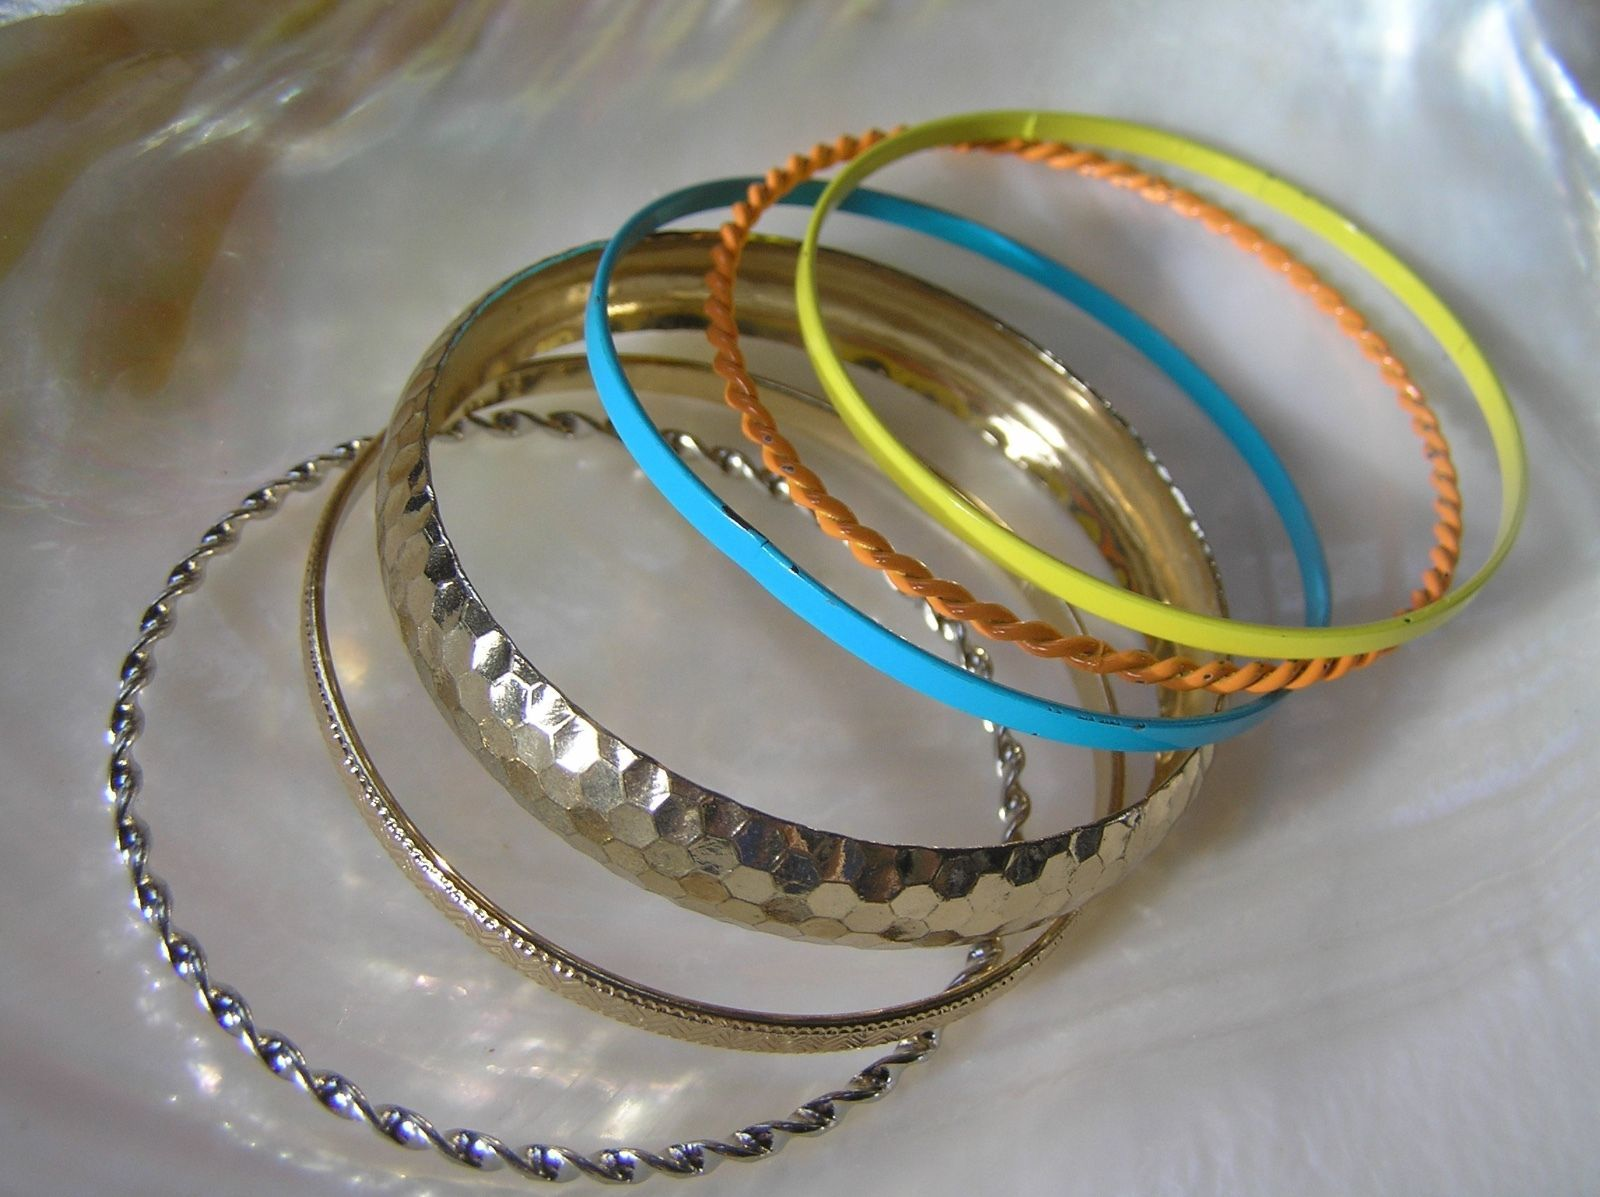 Lot of 6 Blue Yellow Orange Enamel Hammered Twist Goldtone Variety Bangle